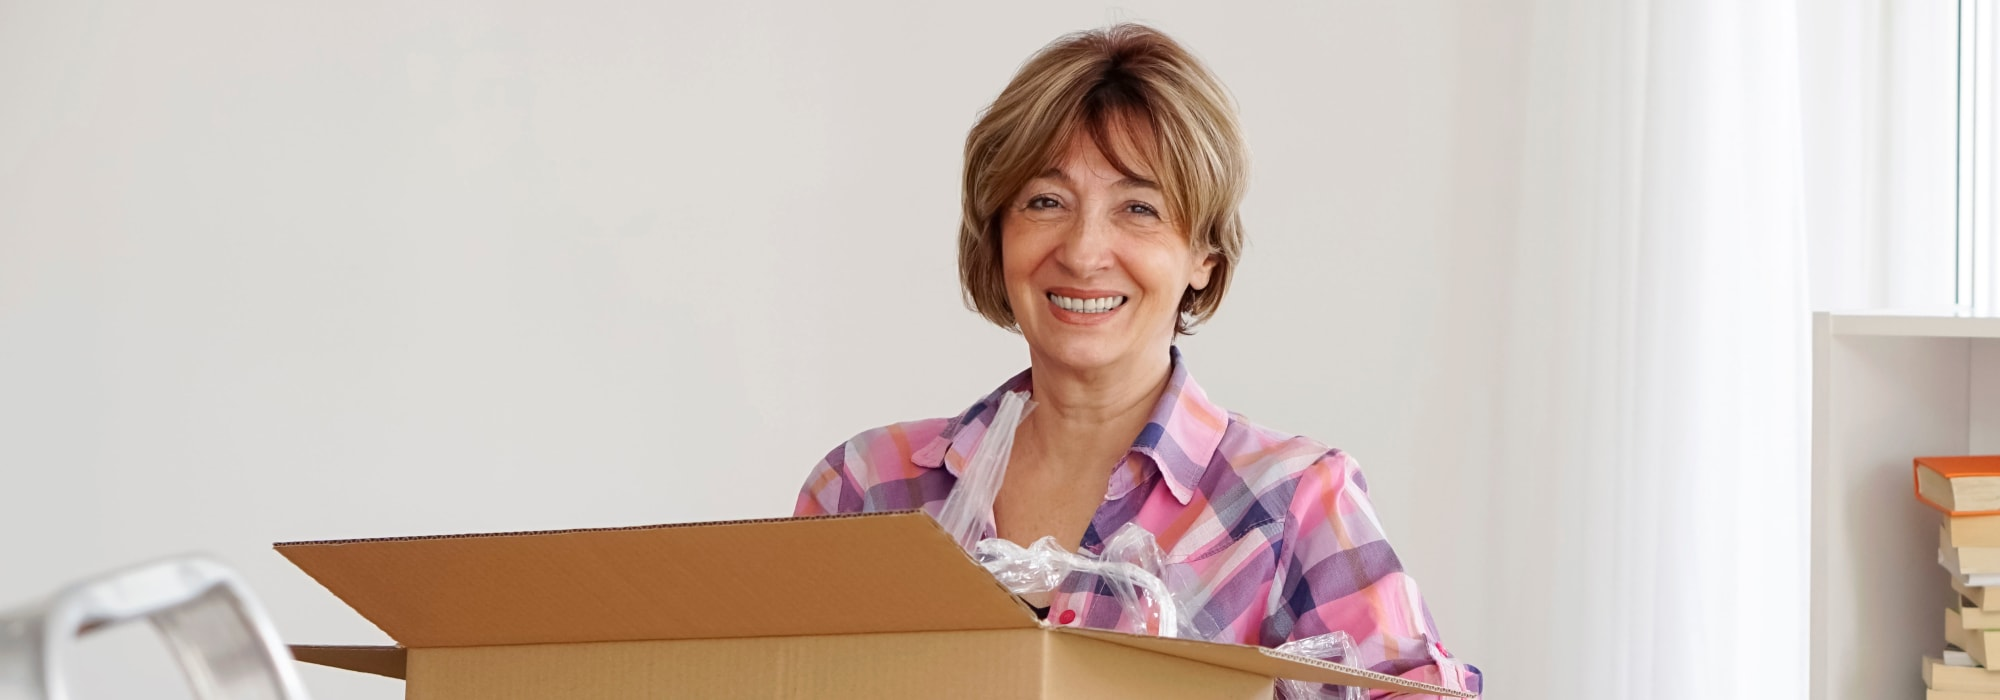 Happy woman moving boxes